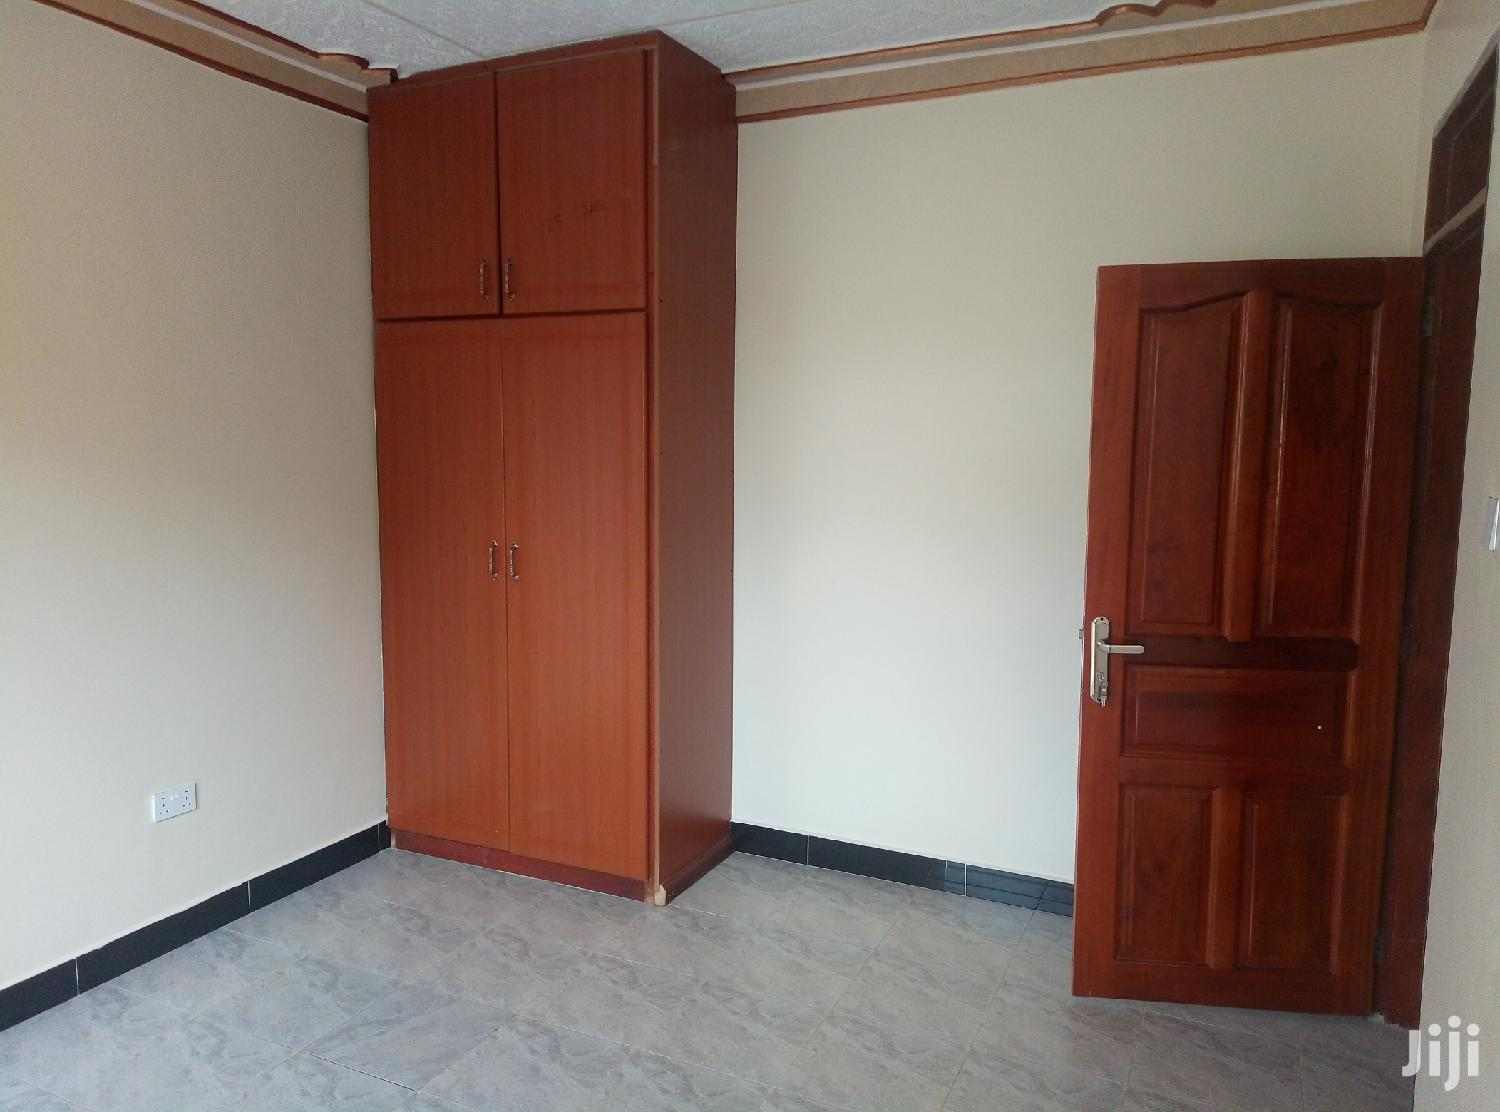 Kyaliwanjala Double Room House for Rent | Houses & Apartments For Rent for sale in Kampala, Central Region, Uganda